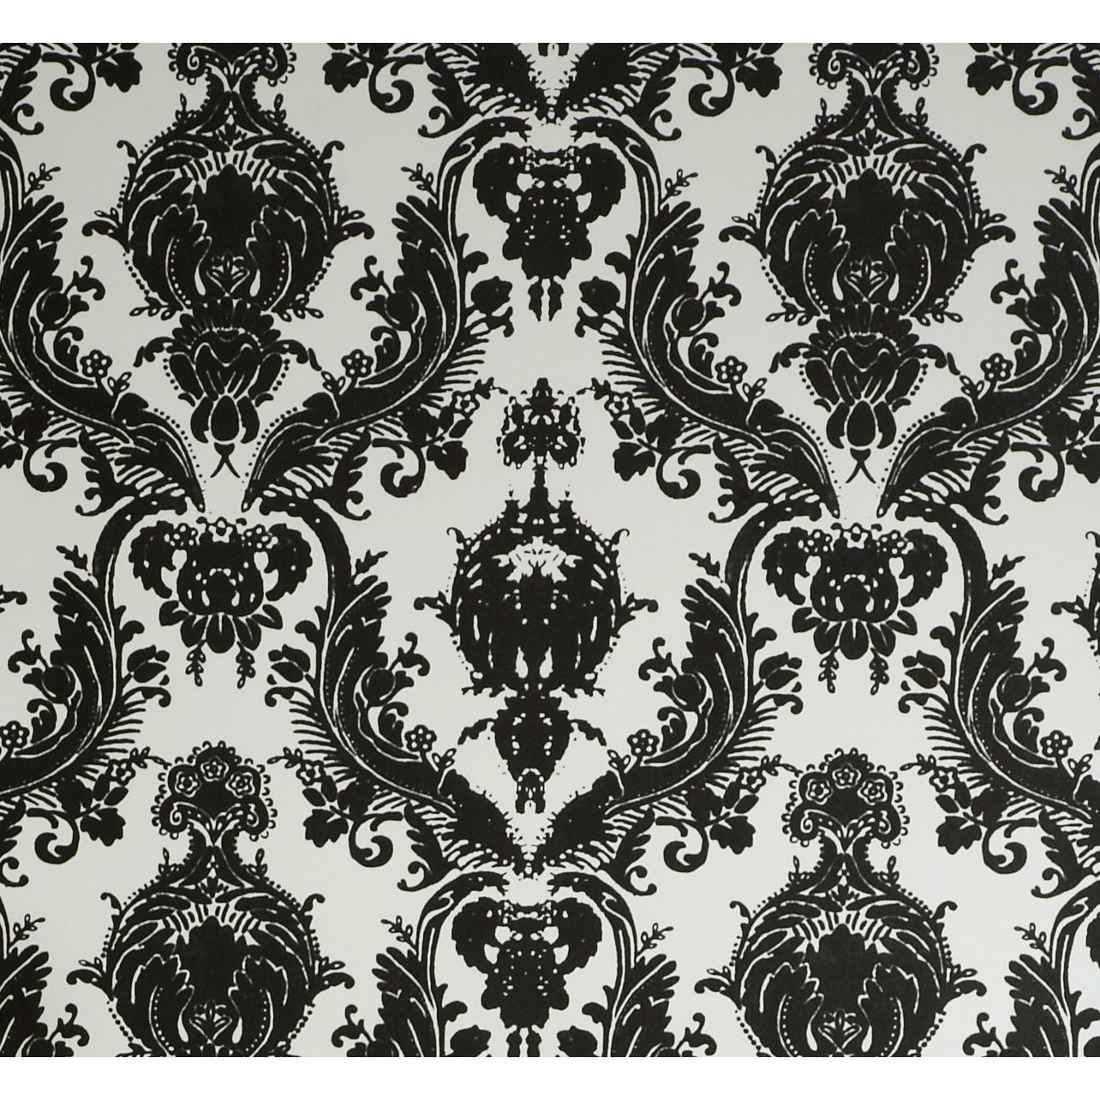 Black and White Wall Patterns